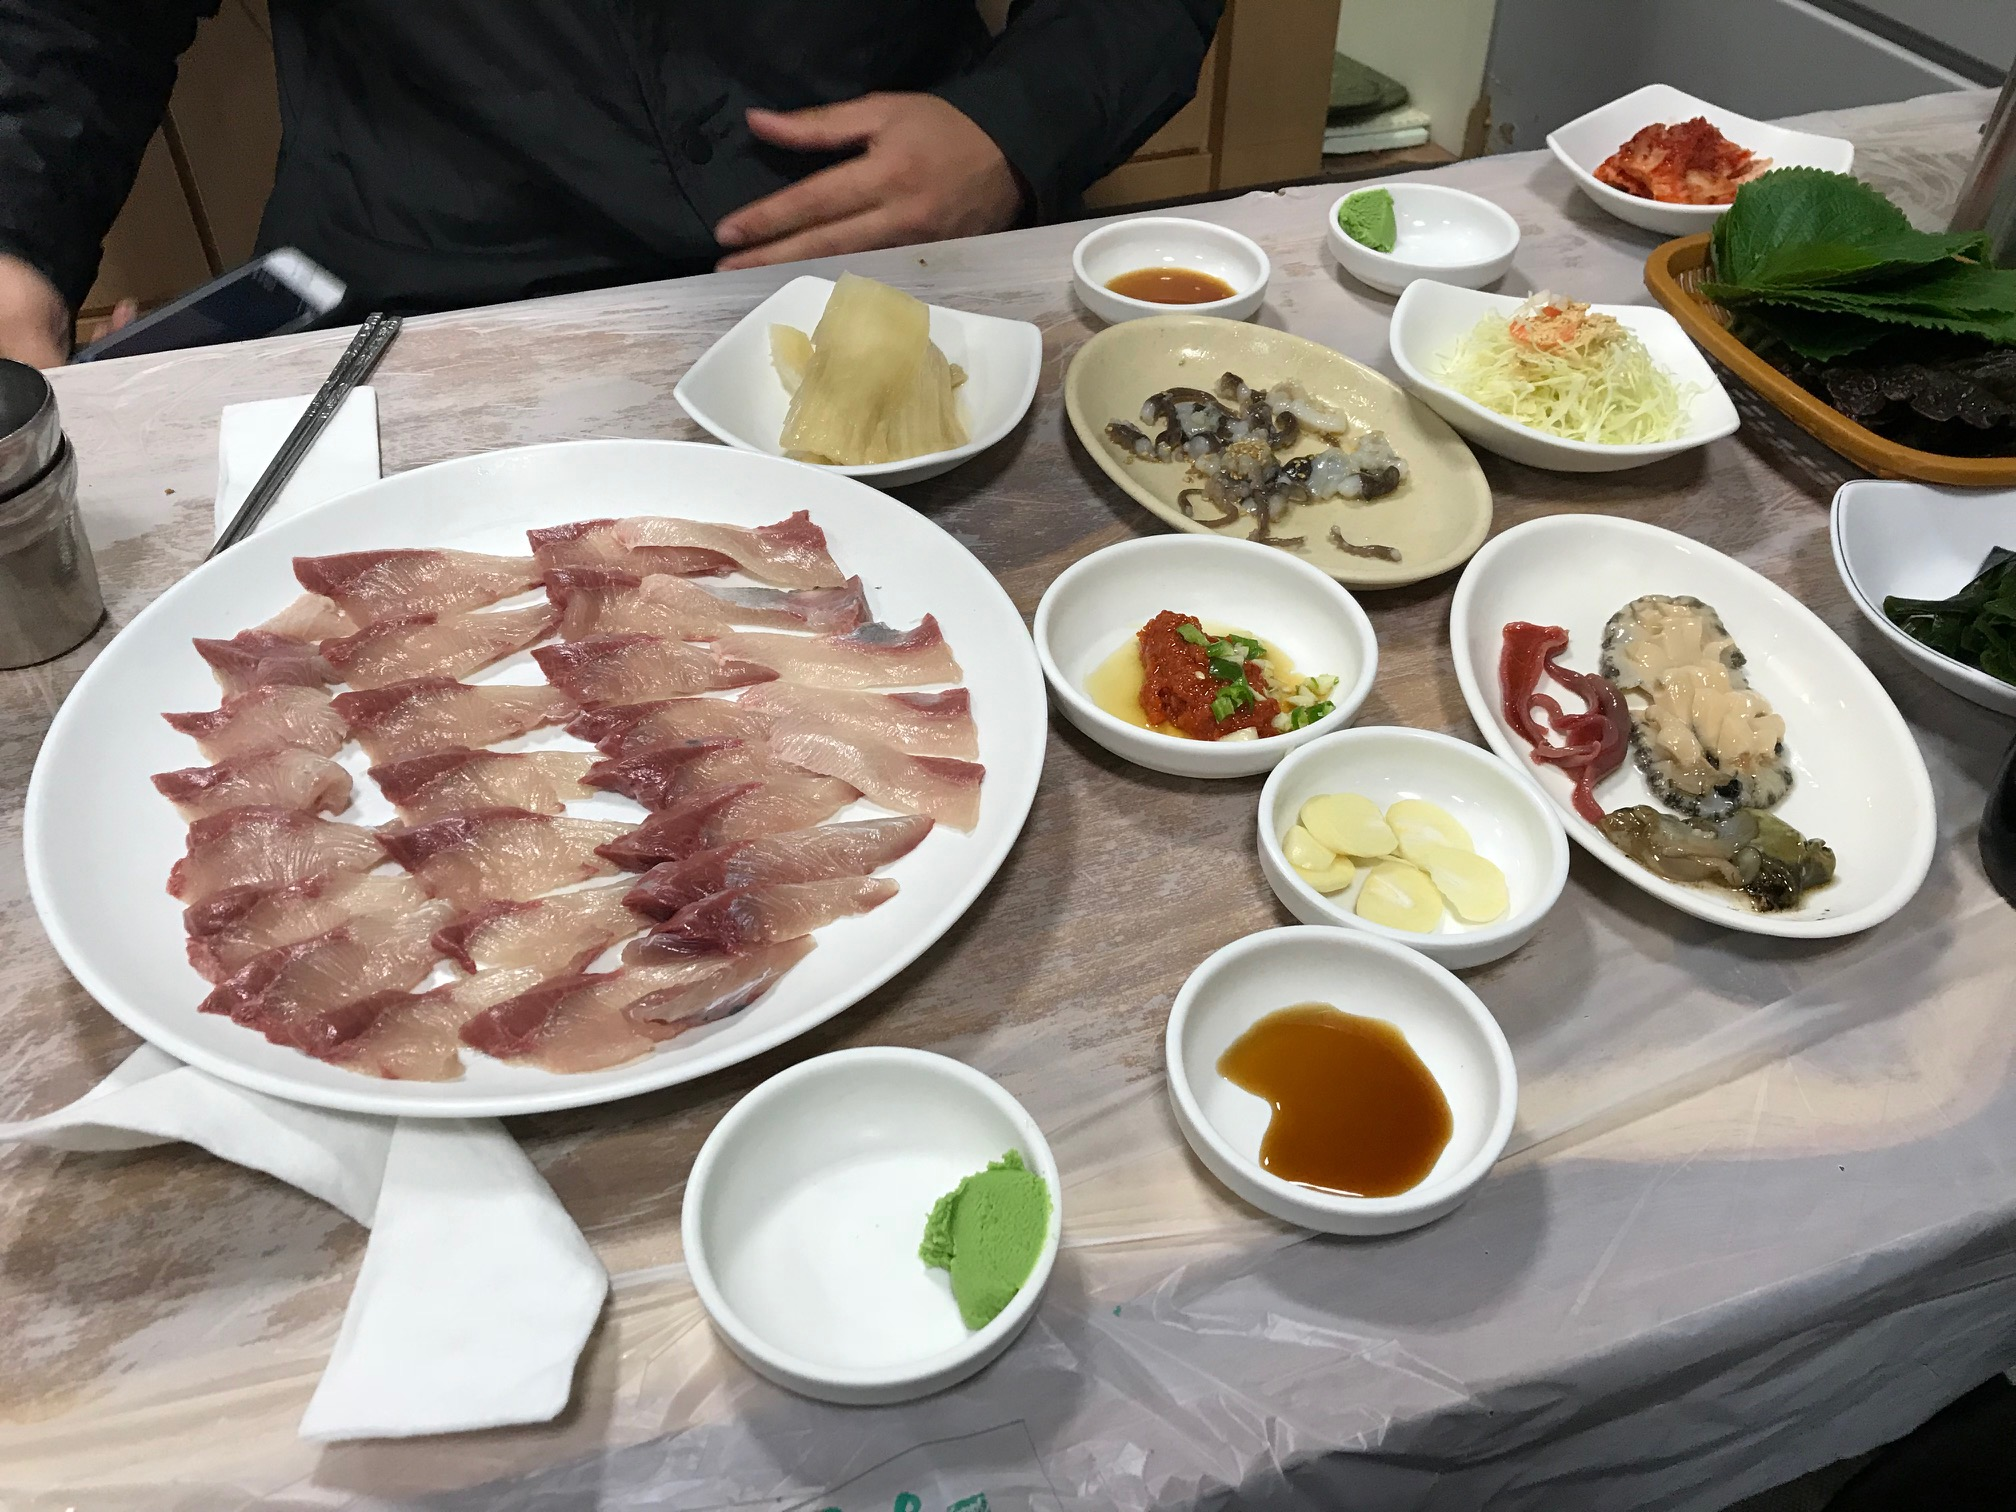 Top 7 Korean Foods To Try If You Kind Of Hate Yourself Said A Broad